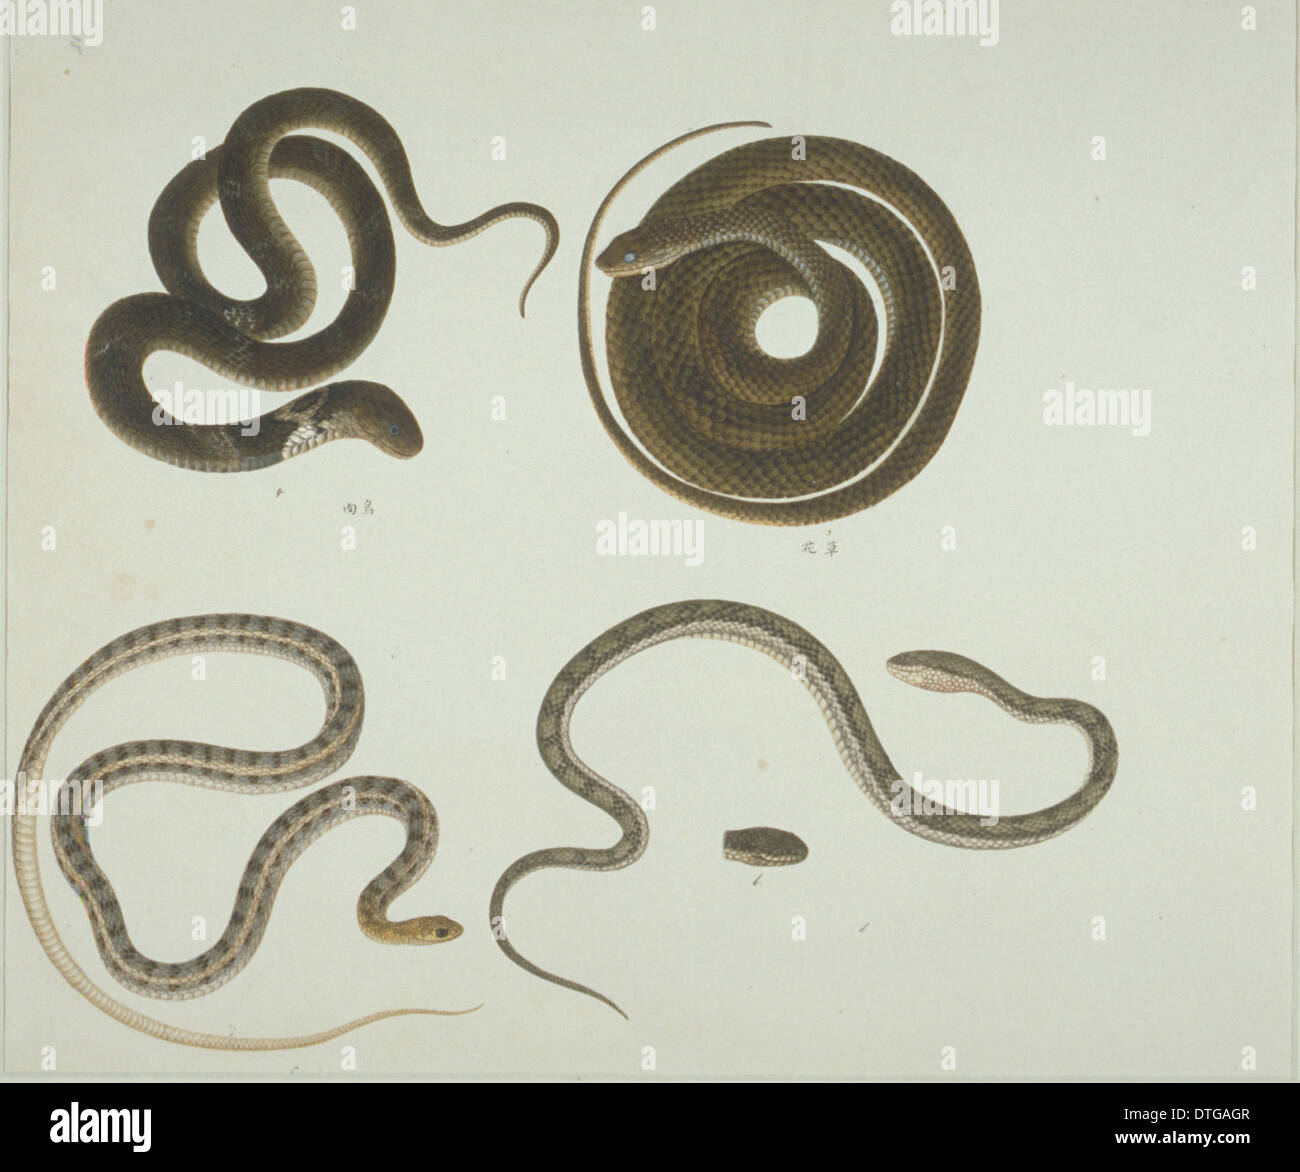 LS Plate 104 from the John Reeves Collection (Zoology) - Stock Image